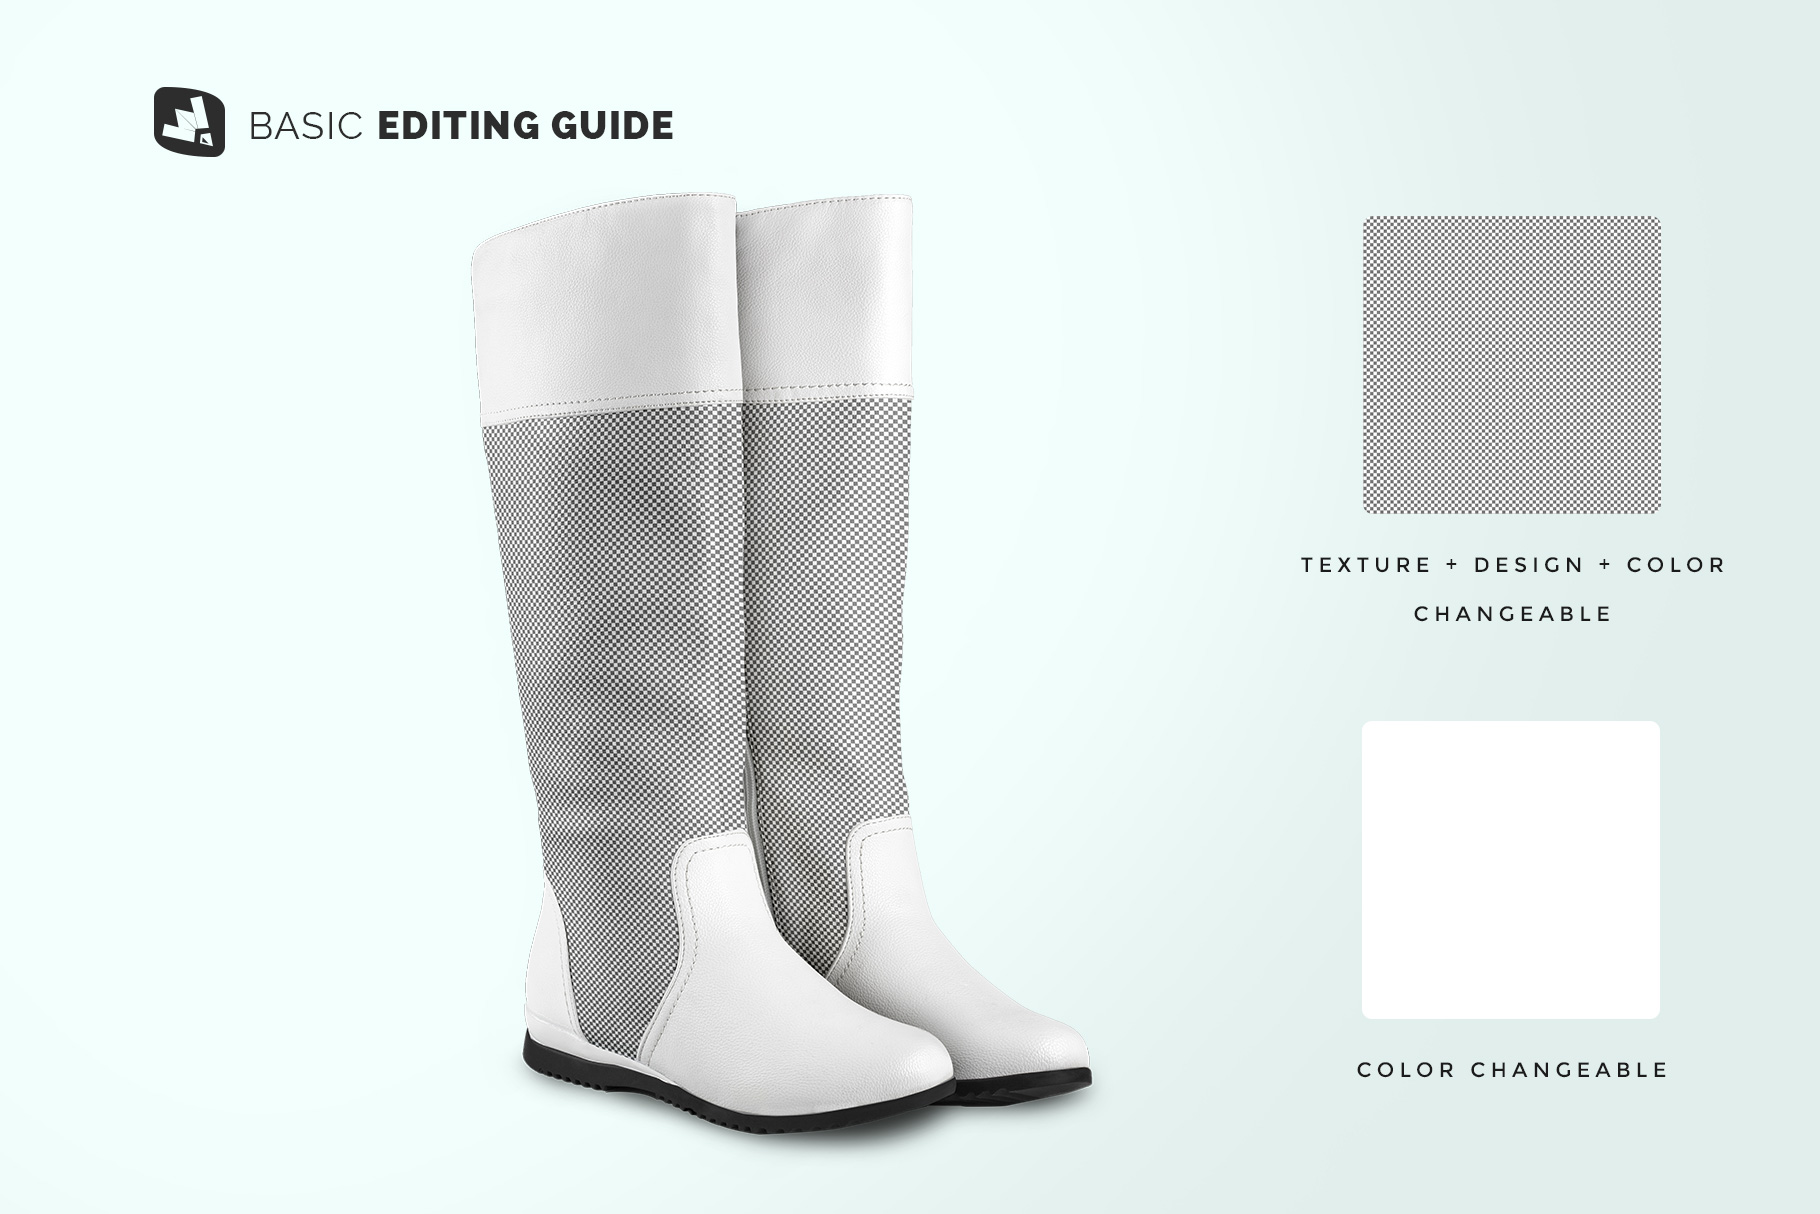 editability of the extended calf leather boots mockup